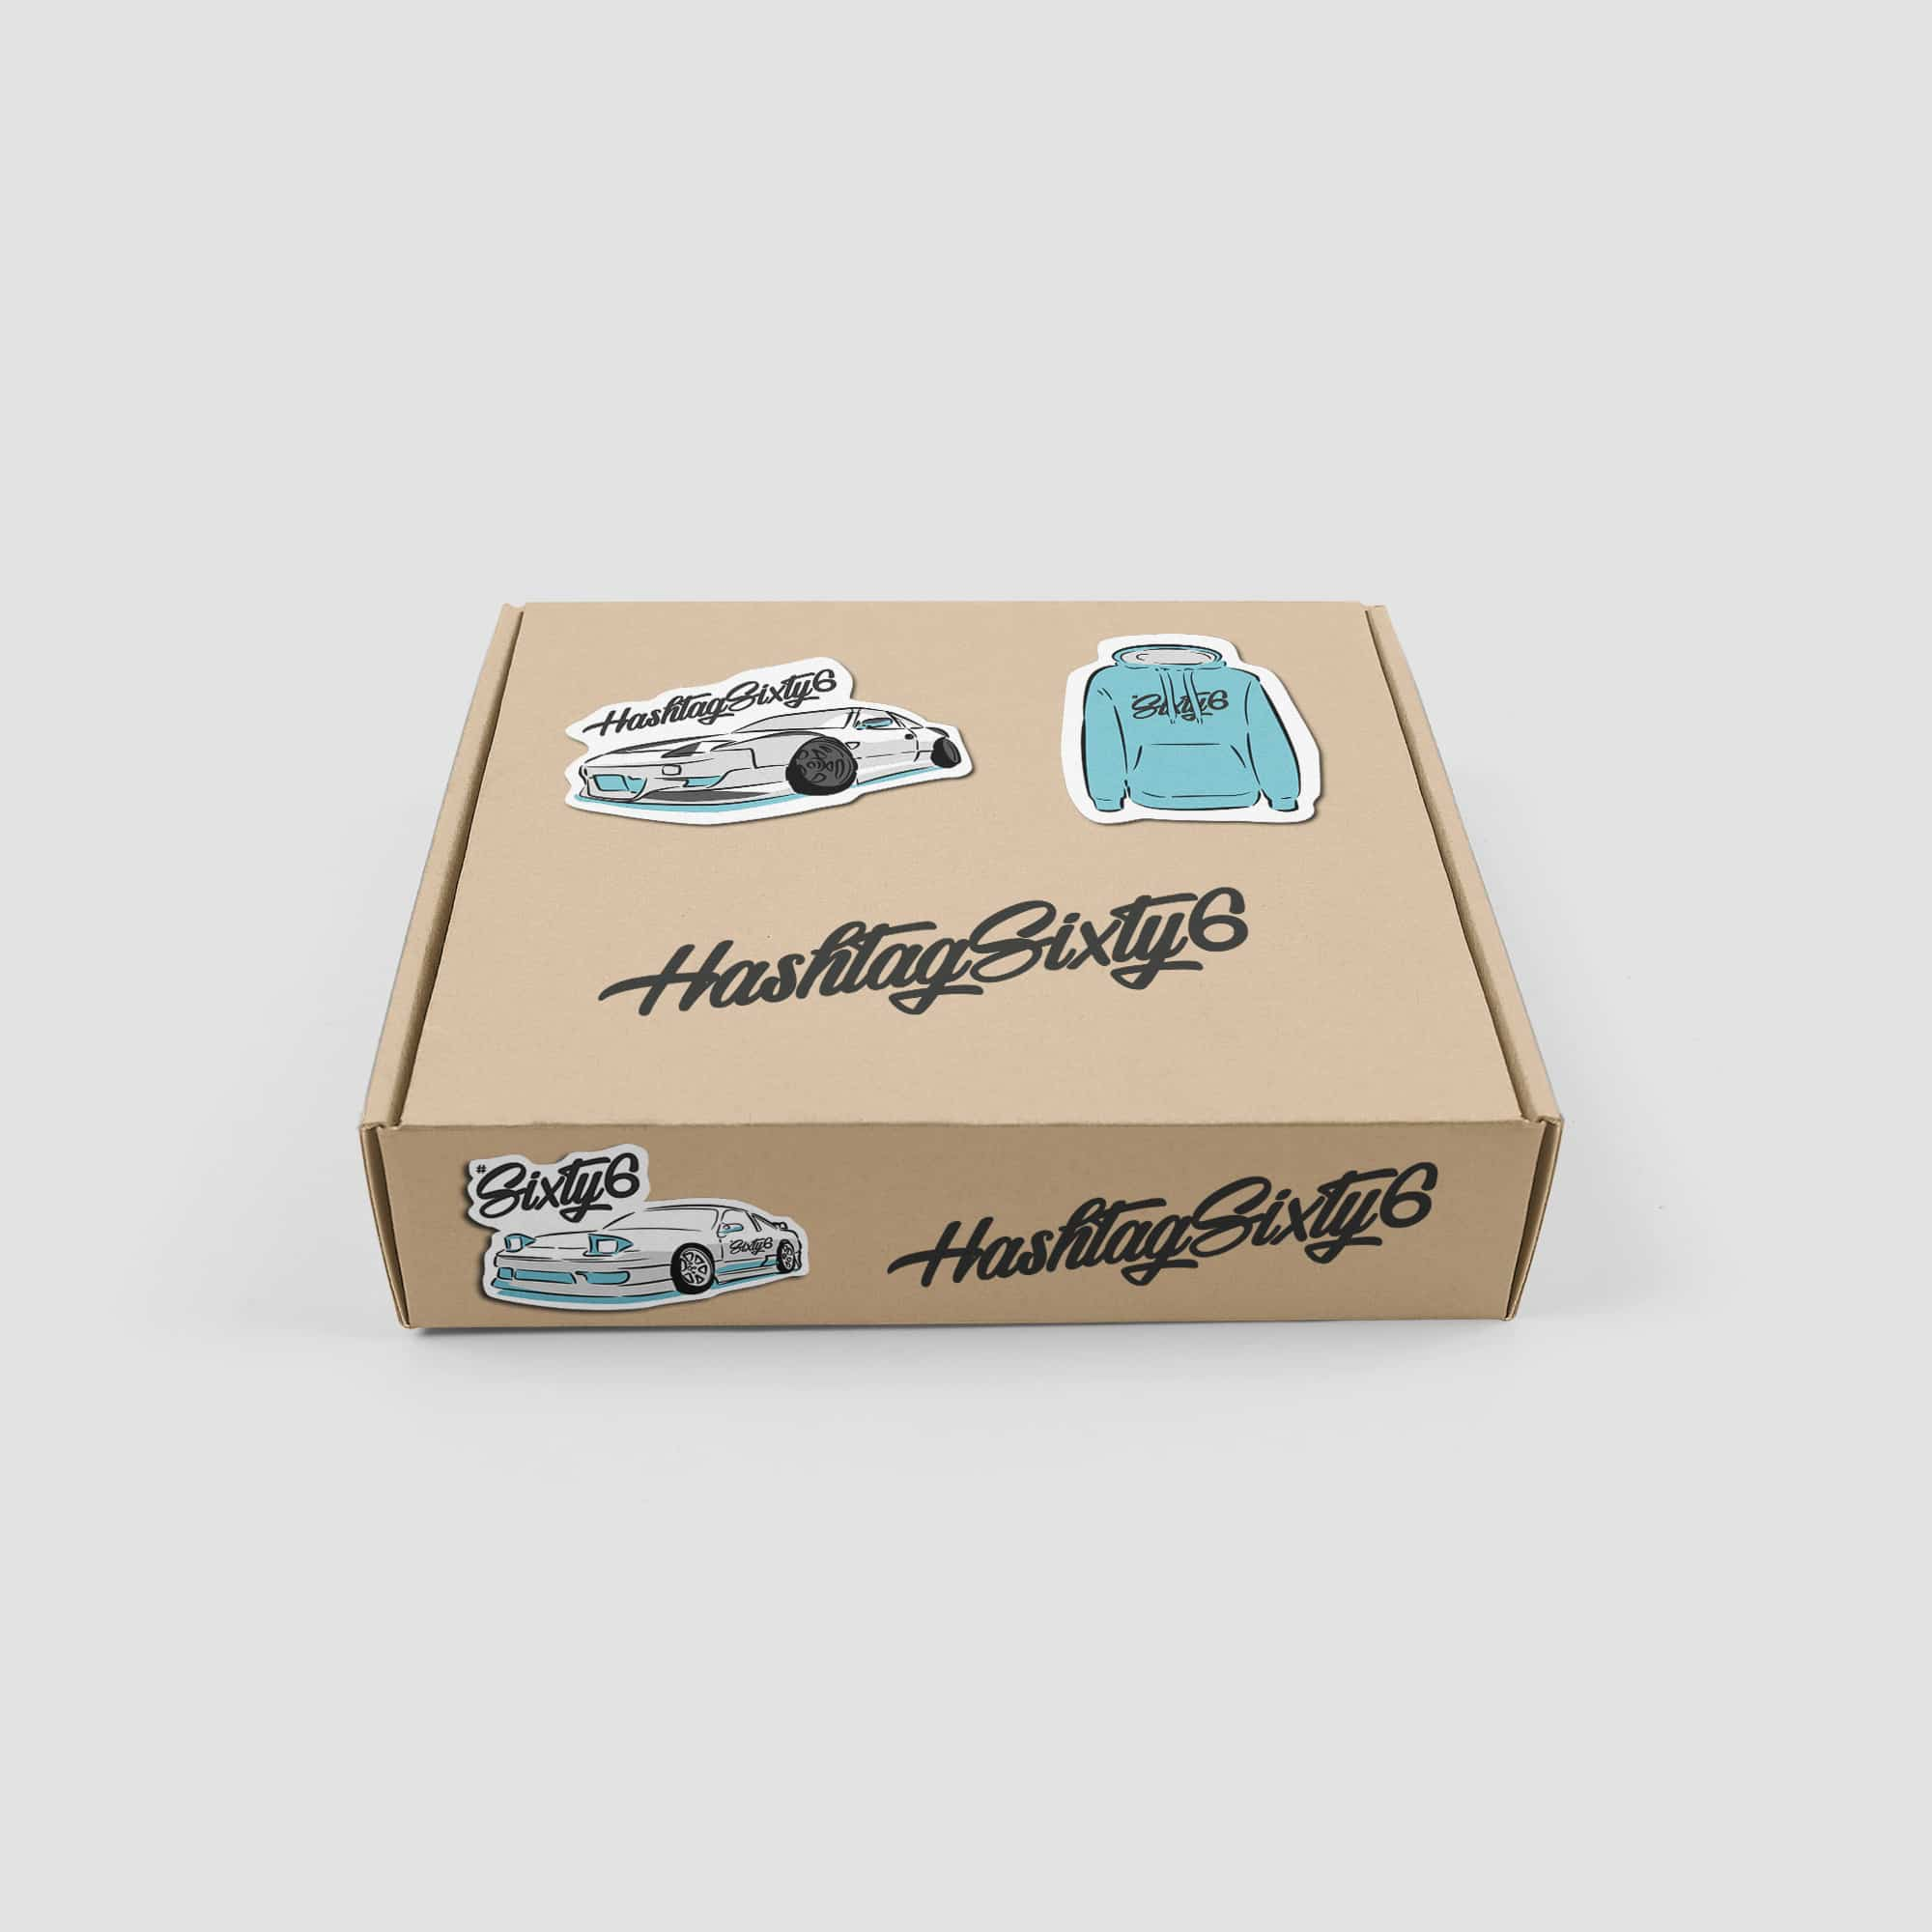 hashtag sixty six car and hoodie stickers on brown box